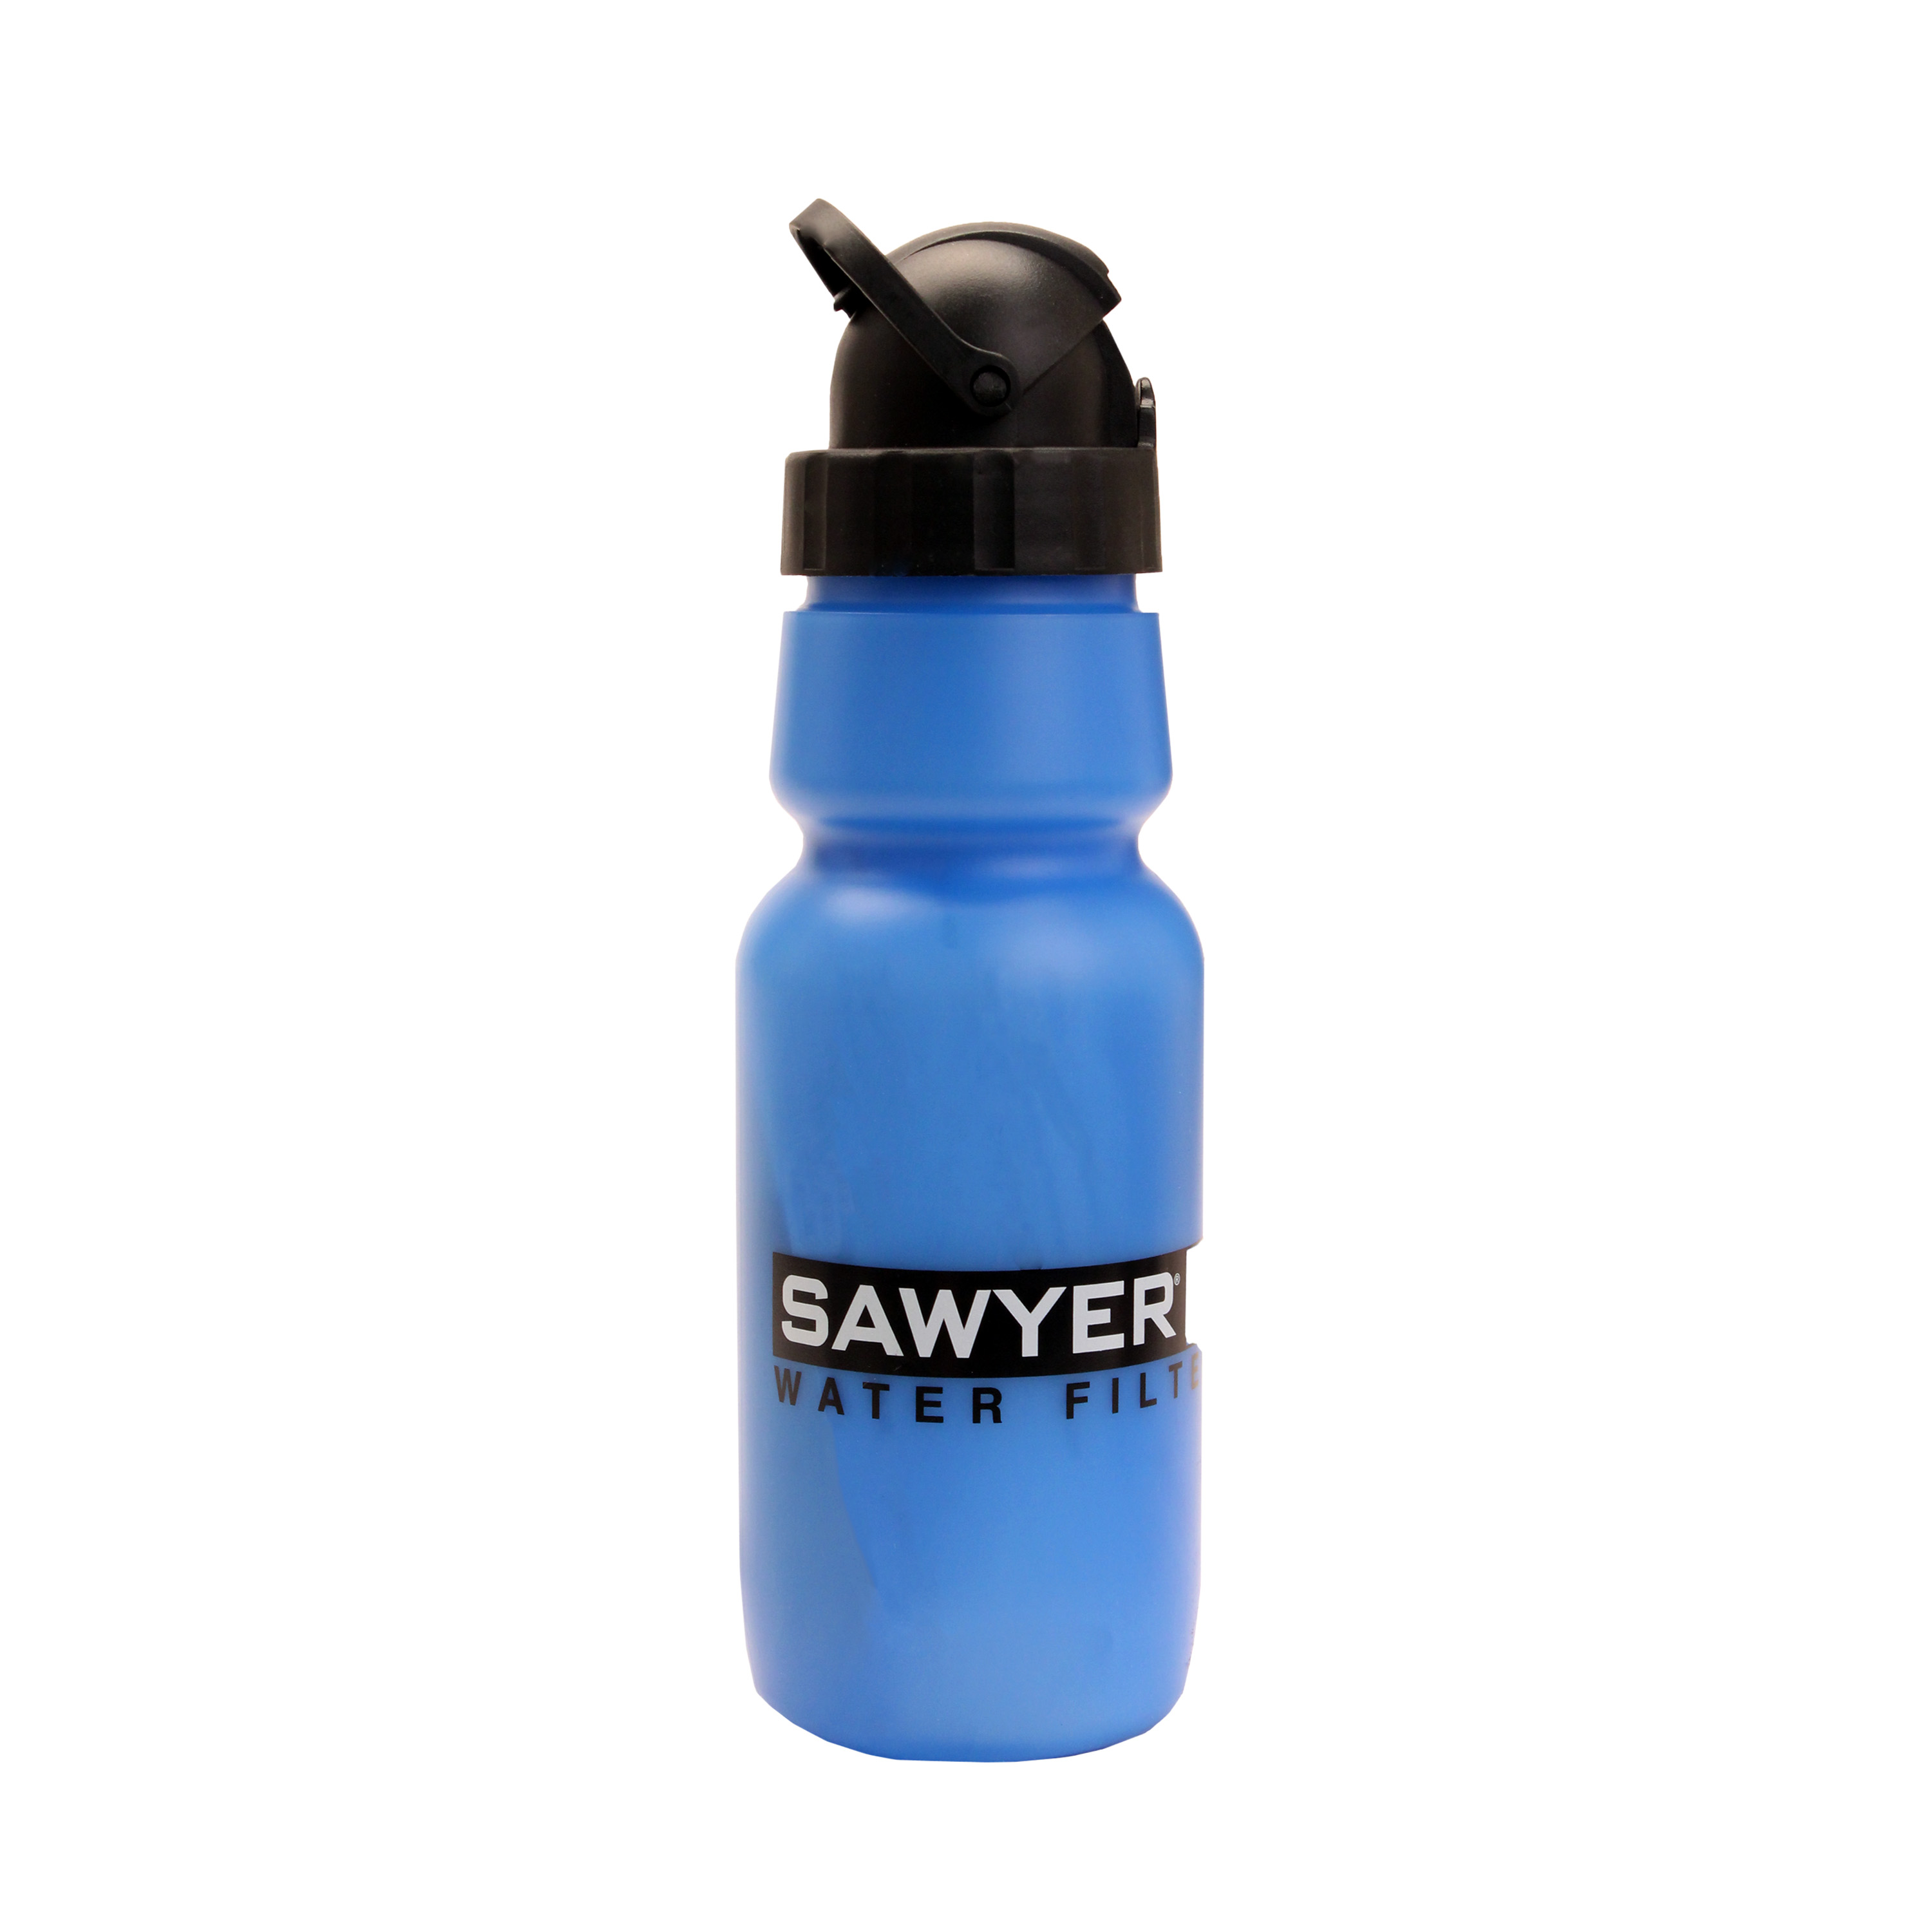 Sawyer Products Water Filtration Bottle, 1 Liter